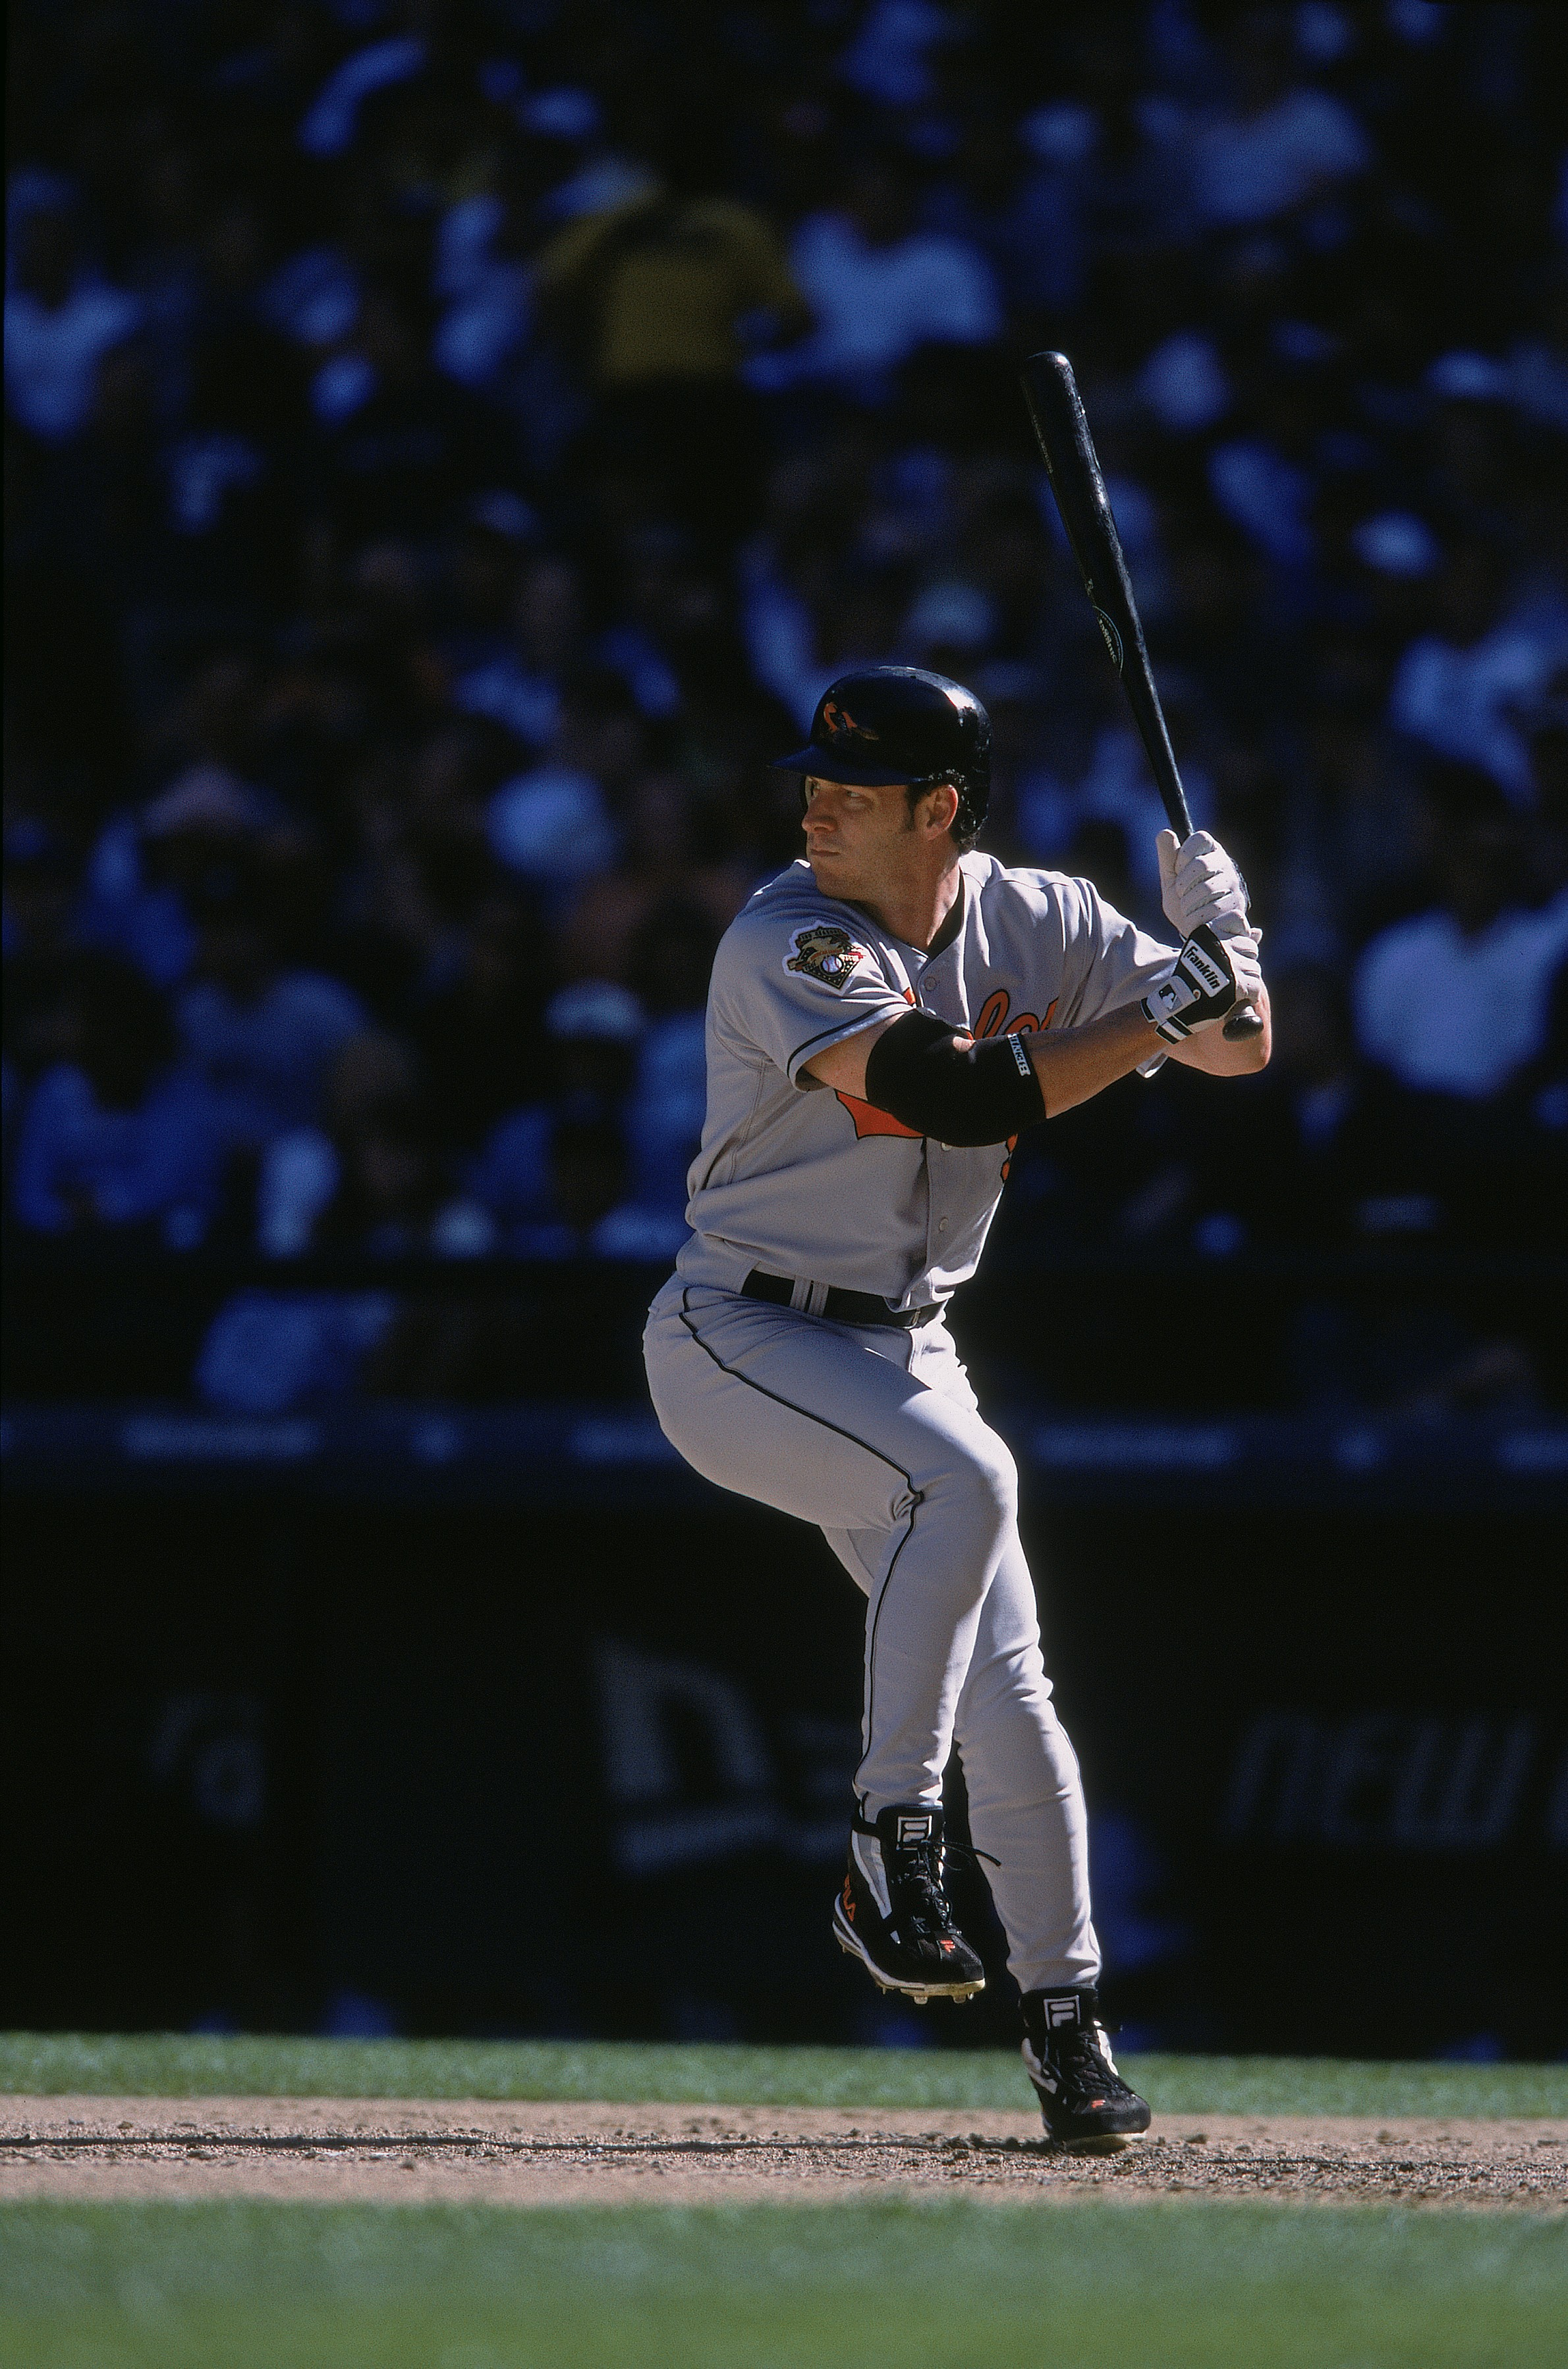 9 Sep 2001:   Brady Anderson #9 of the Baltimore Orioles at bat during the game against the Seattle Mariners at Safeco Field in Seatte, Washington. The Mariners defeated the Orioles 6-0.Mandatory Credit: Otto Greule  /Allsport